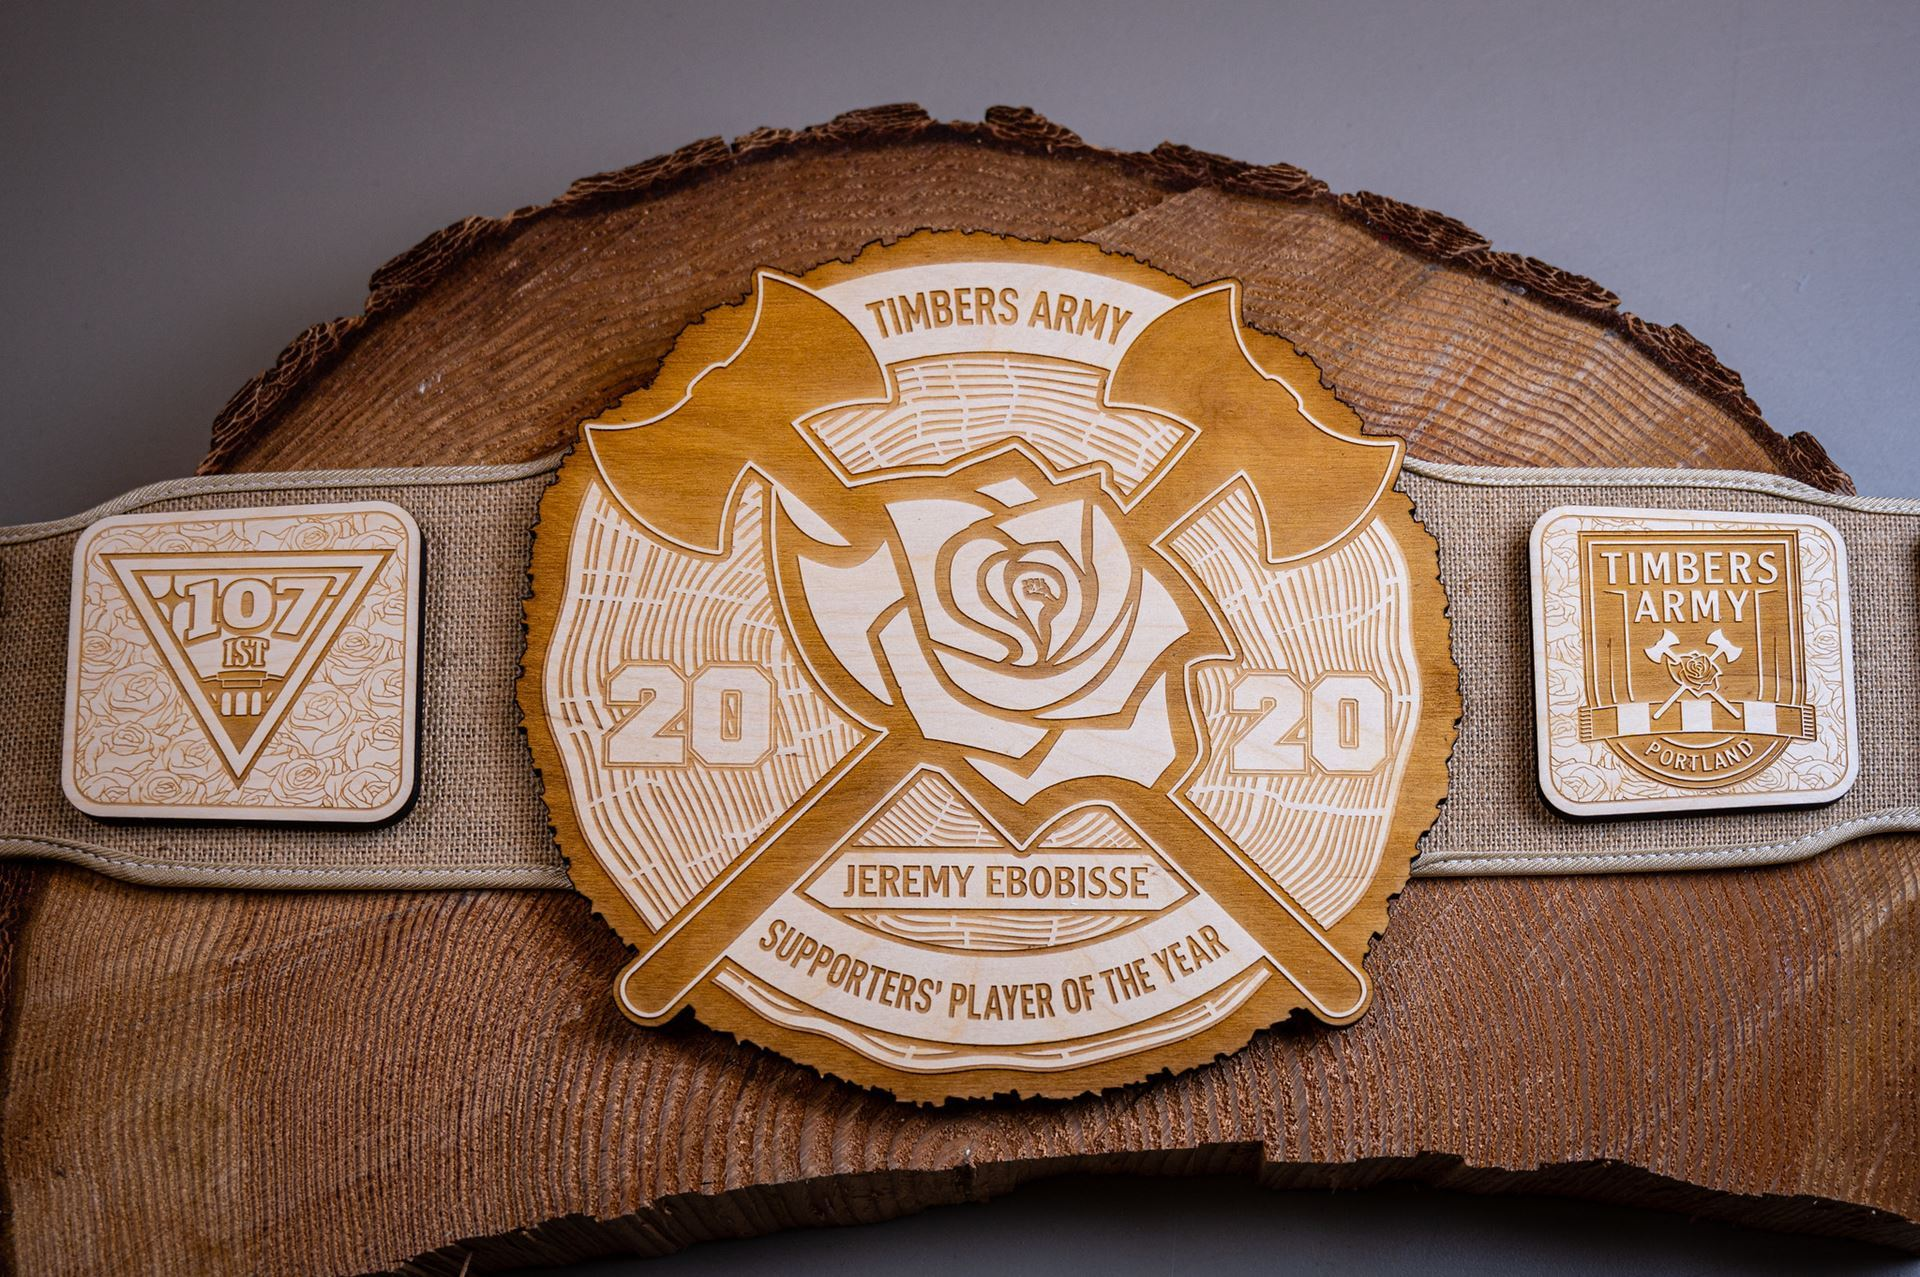 2020 Supporters' Player of the Year belt